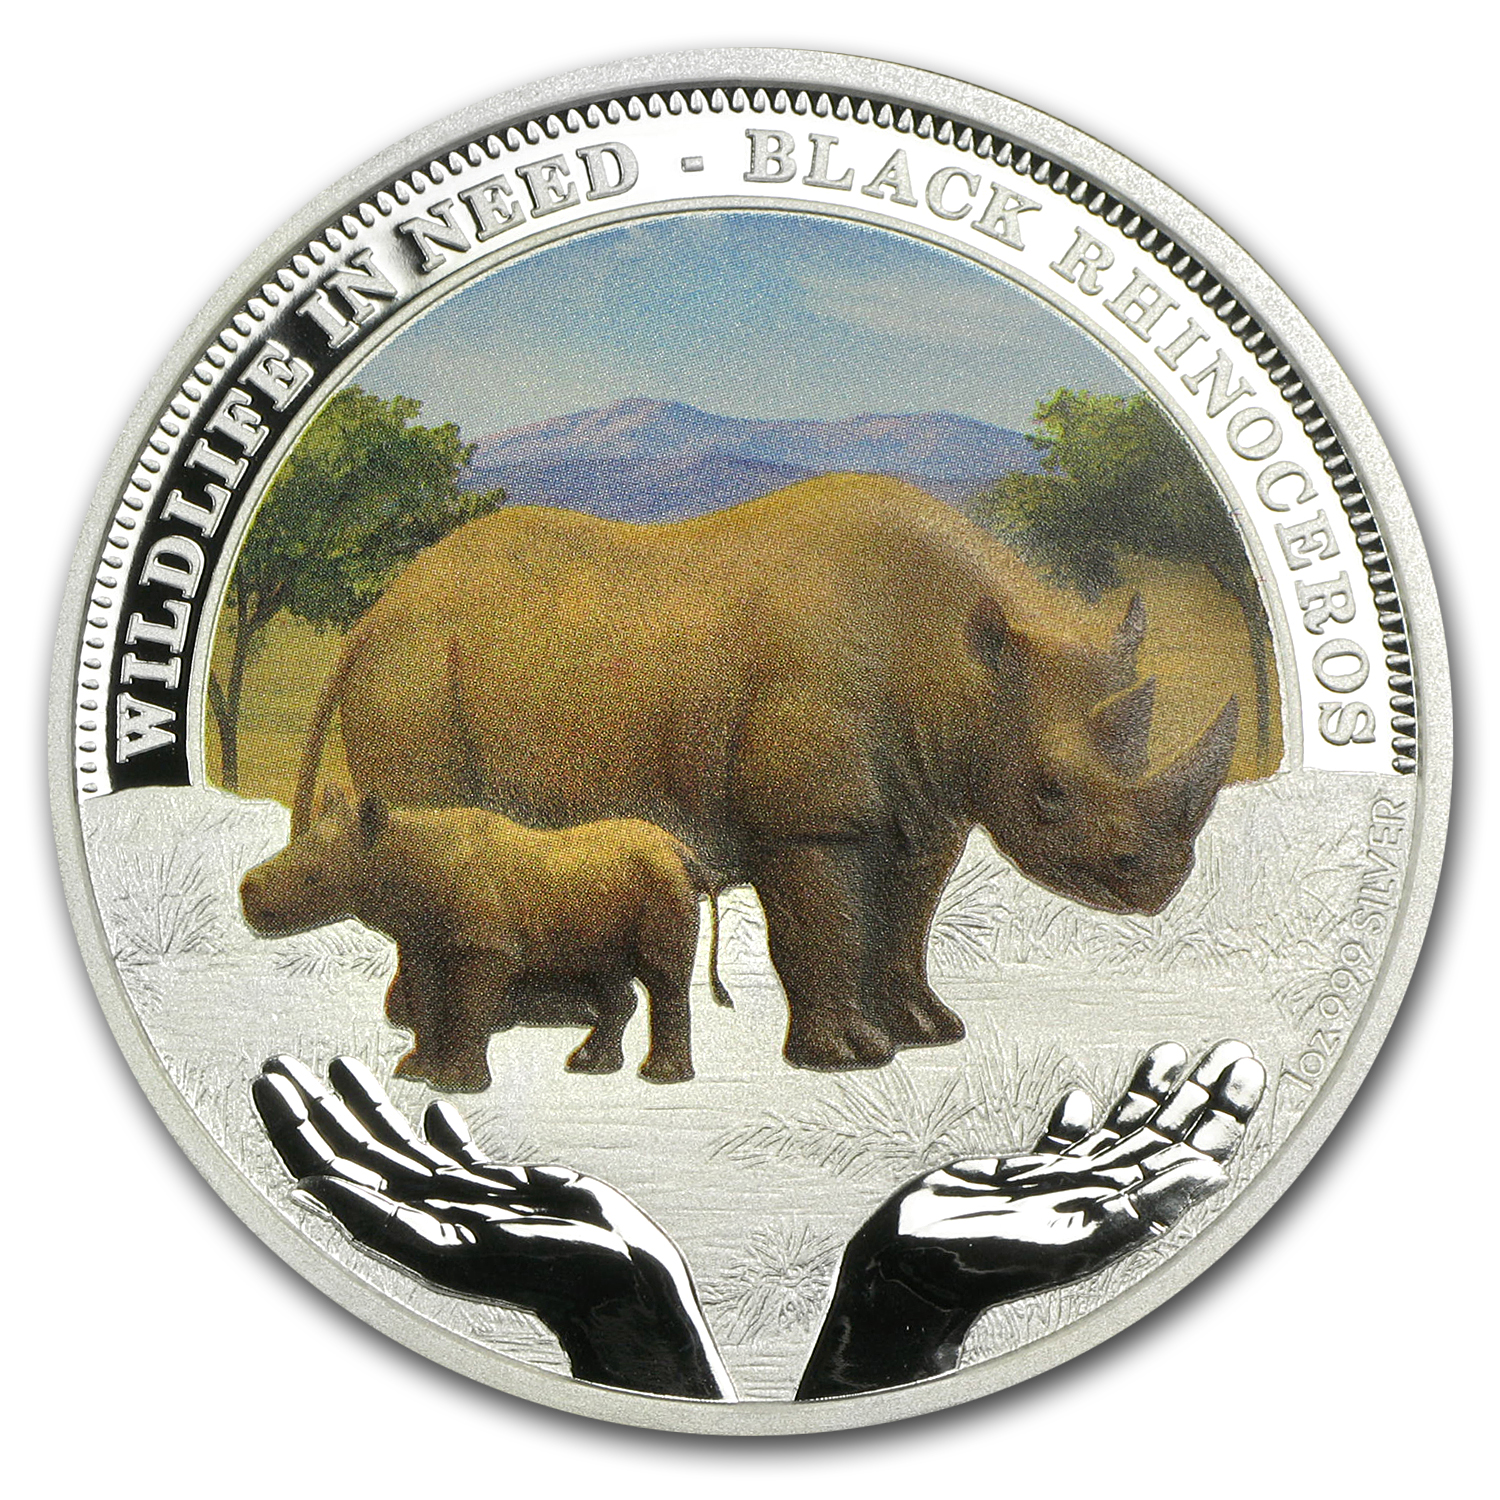 2012 Tuvalu 1 oz Silver Black Rhinoceros Proof